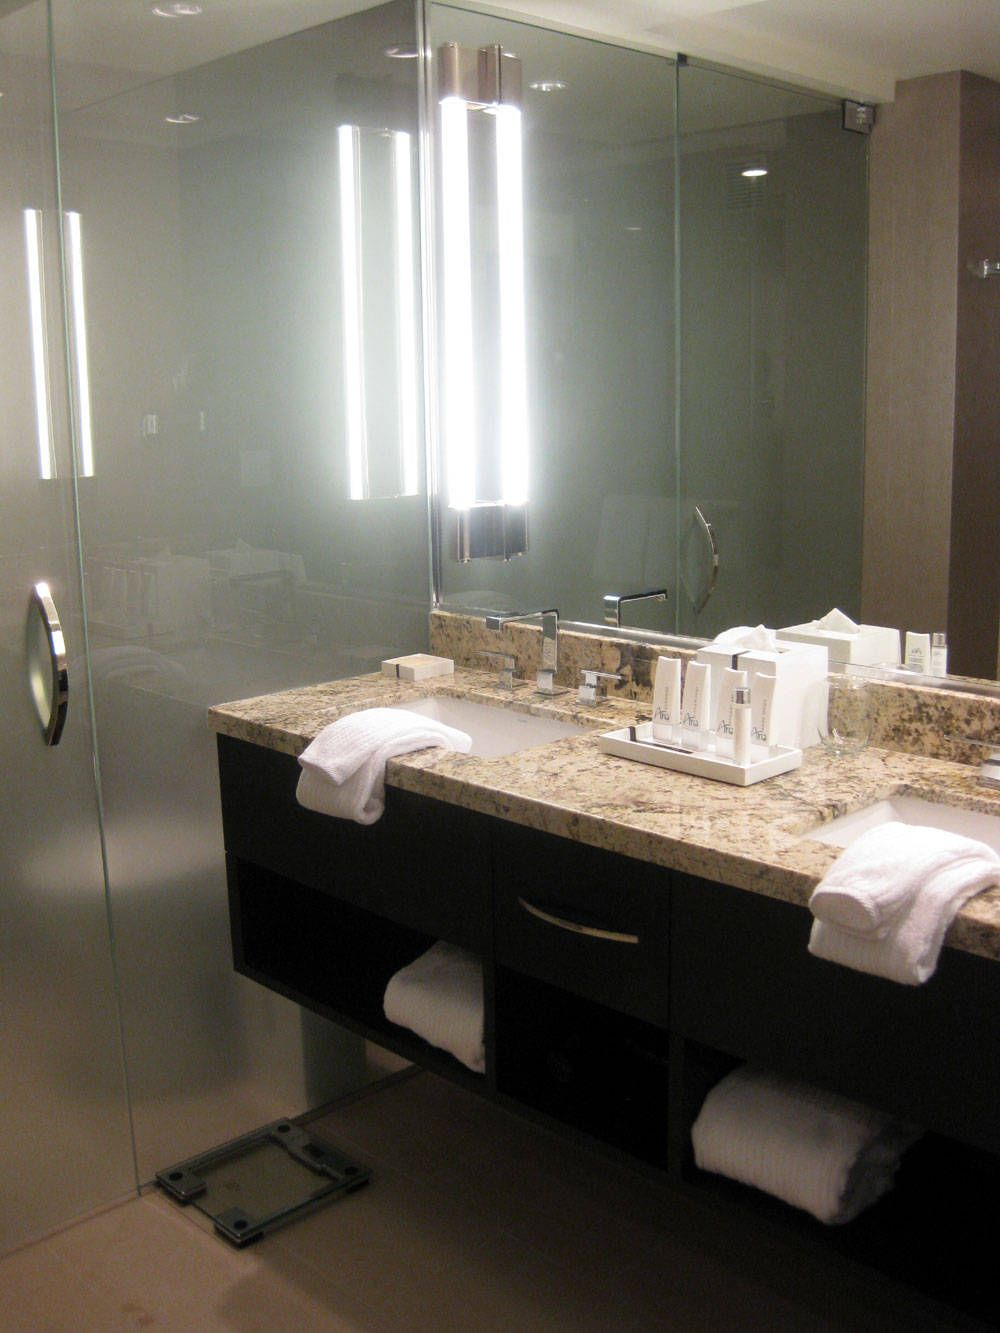 bathroom vanities | BATHROOM VANITIES PICTURES » Bathroom Design ...